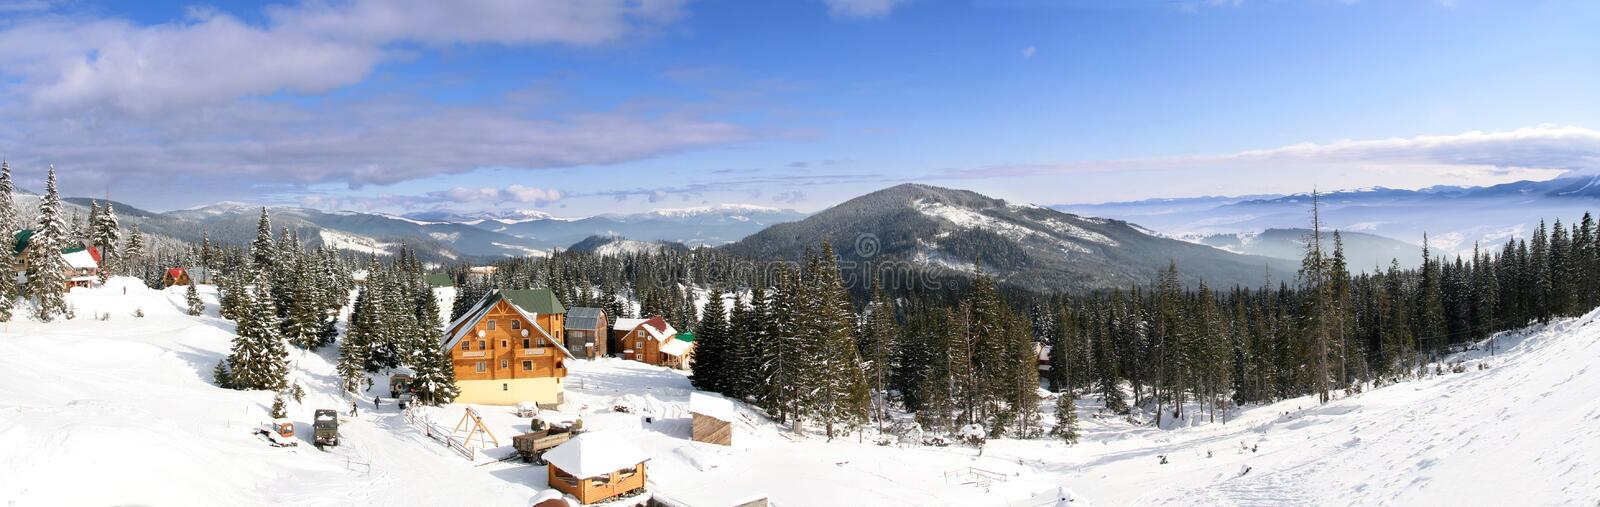 Ski chalet royalty free stock images